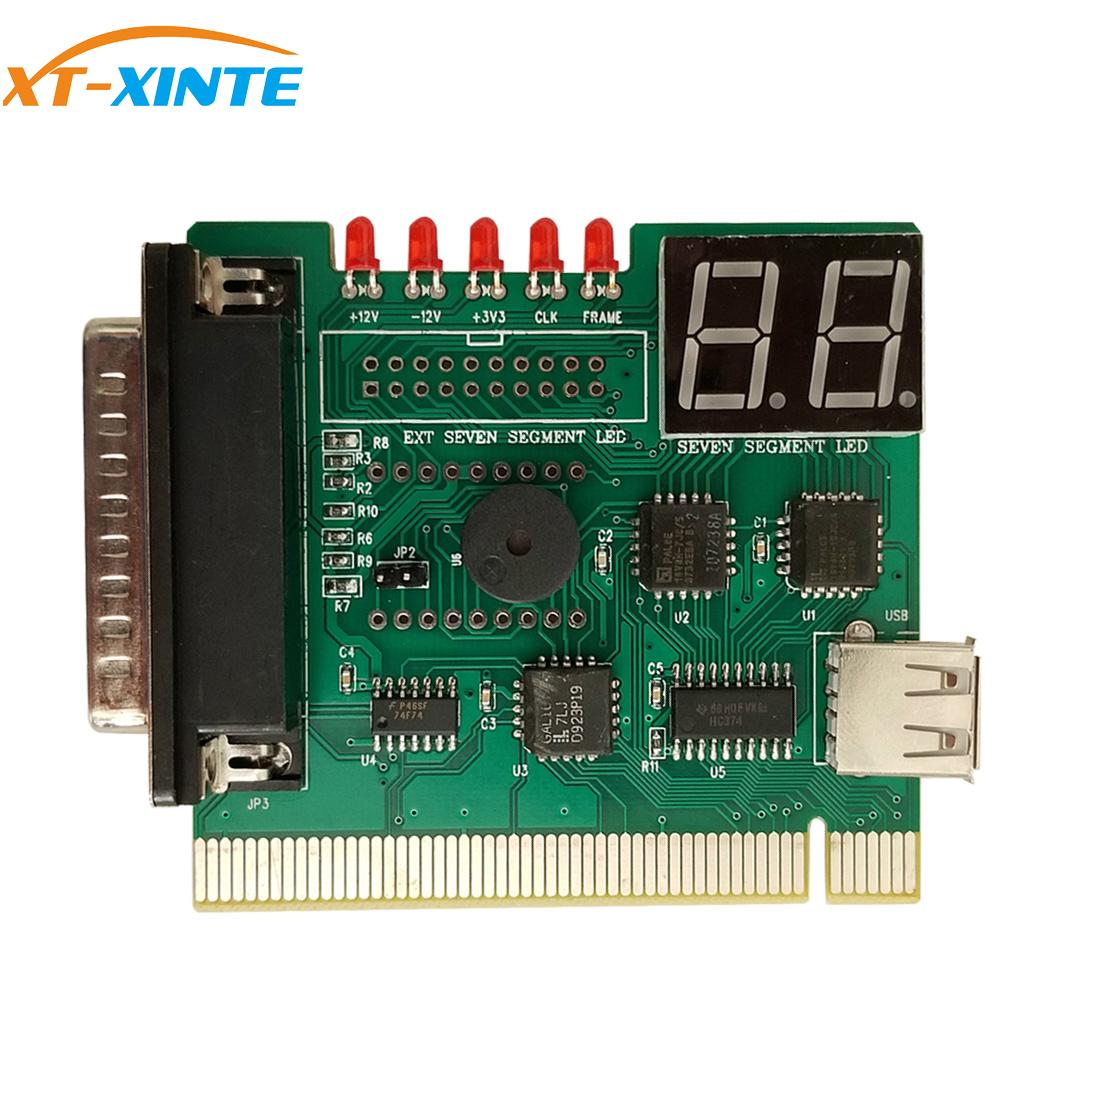 XT-XINTE USB PCI PC Motherboard Notebook Laptop Analyzer Diagnostic Analyzer POST Card With USB Cable For Notebook PC